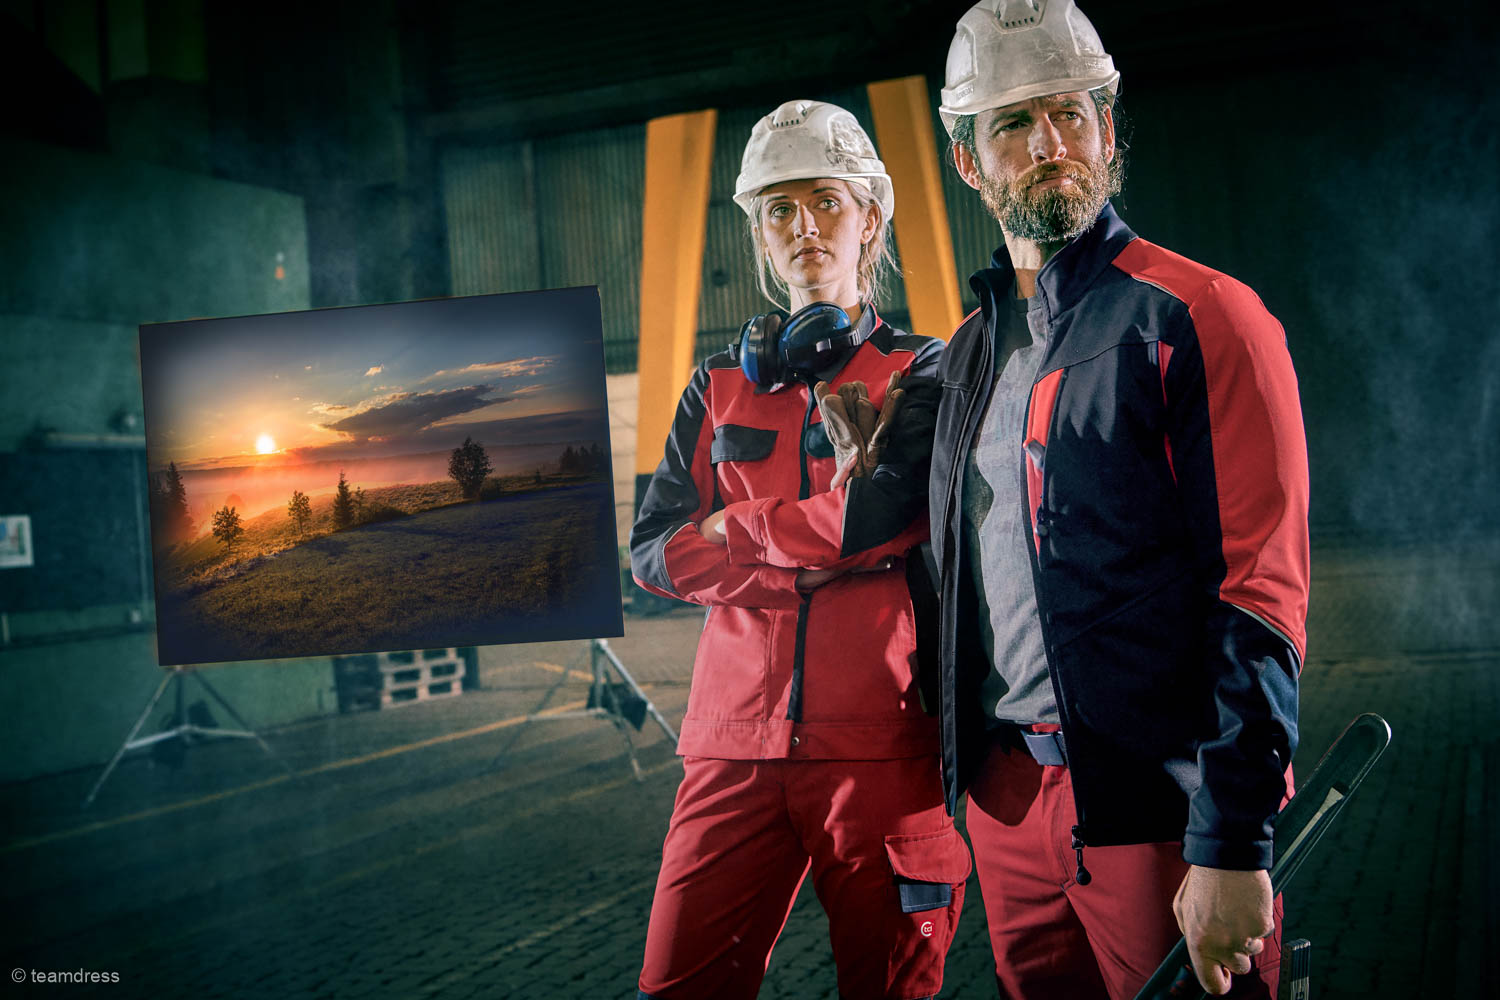 PCIAW | PCIAW Blog | Workwear: The 'Real' Cost of Low Cost with teamdress